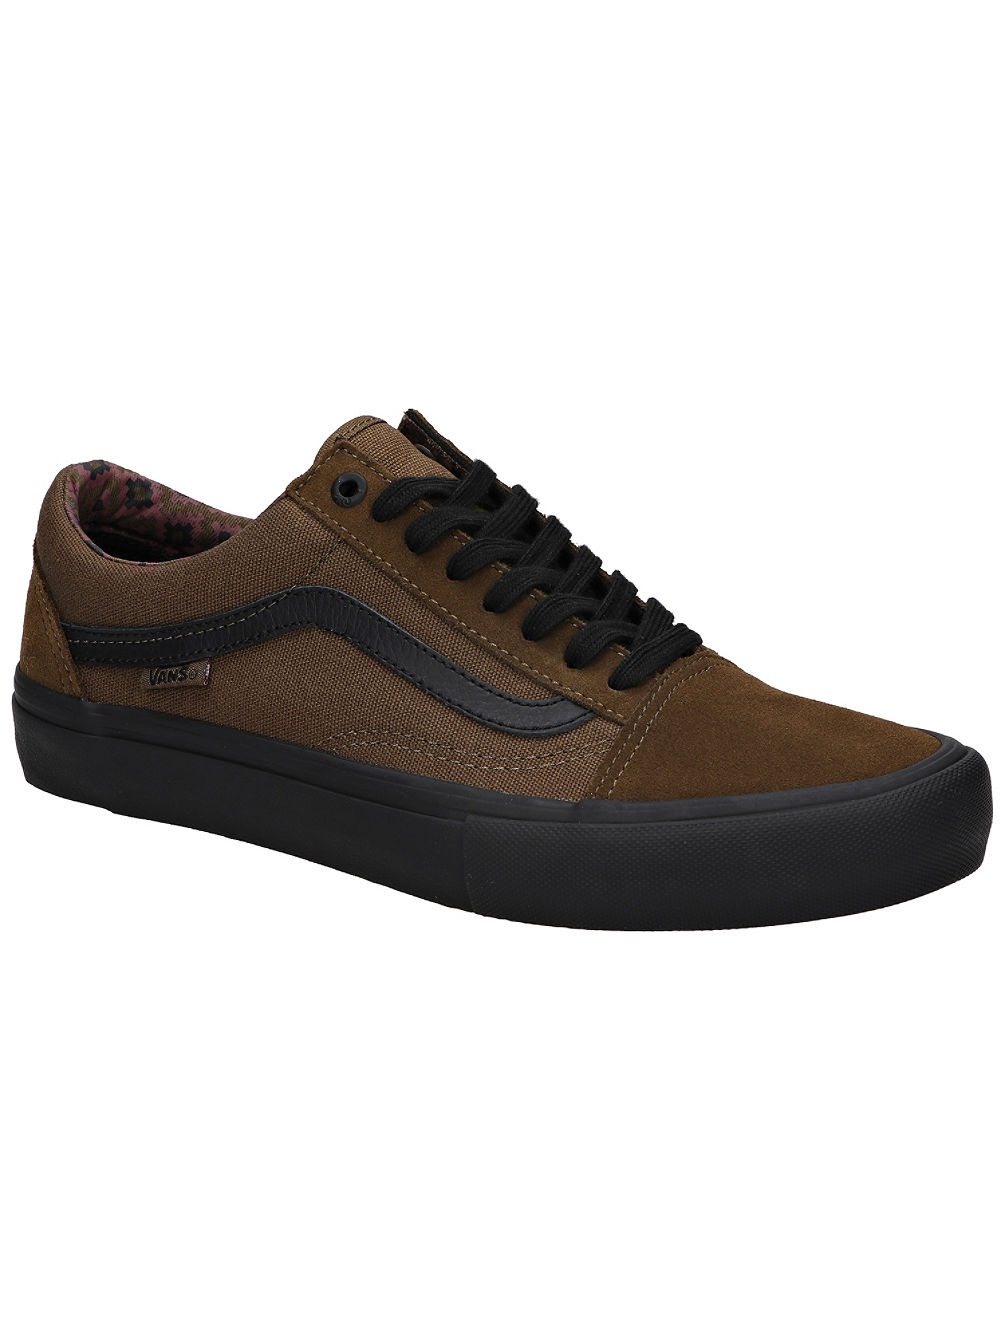 Dakota Roche Old Skool Pro Skate Shoes